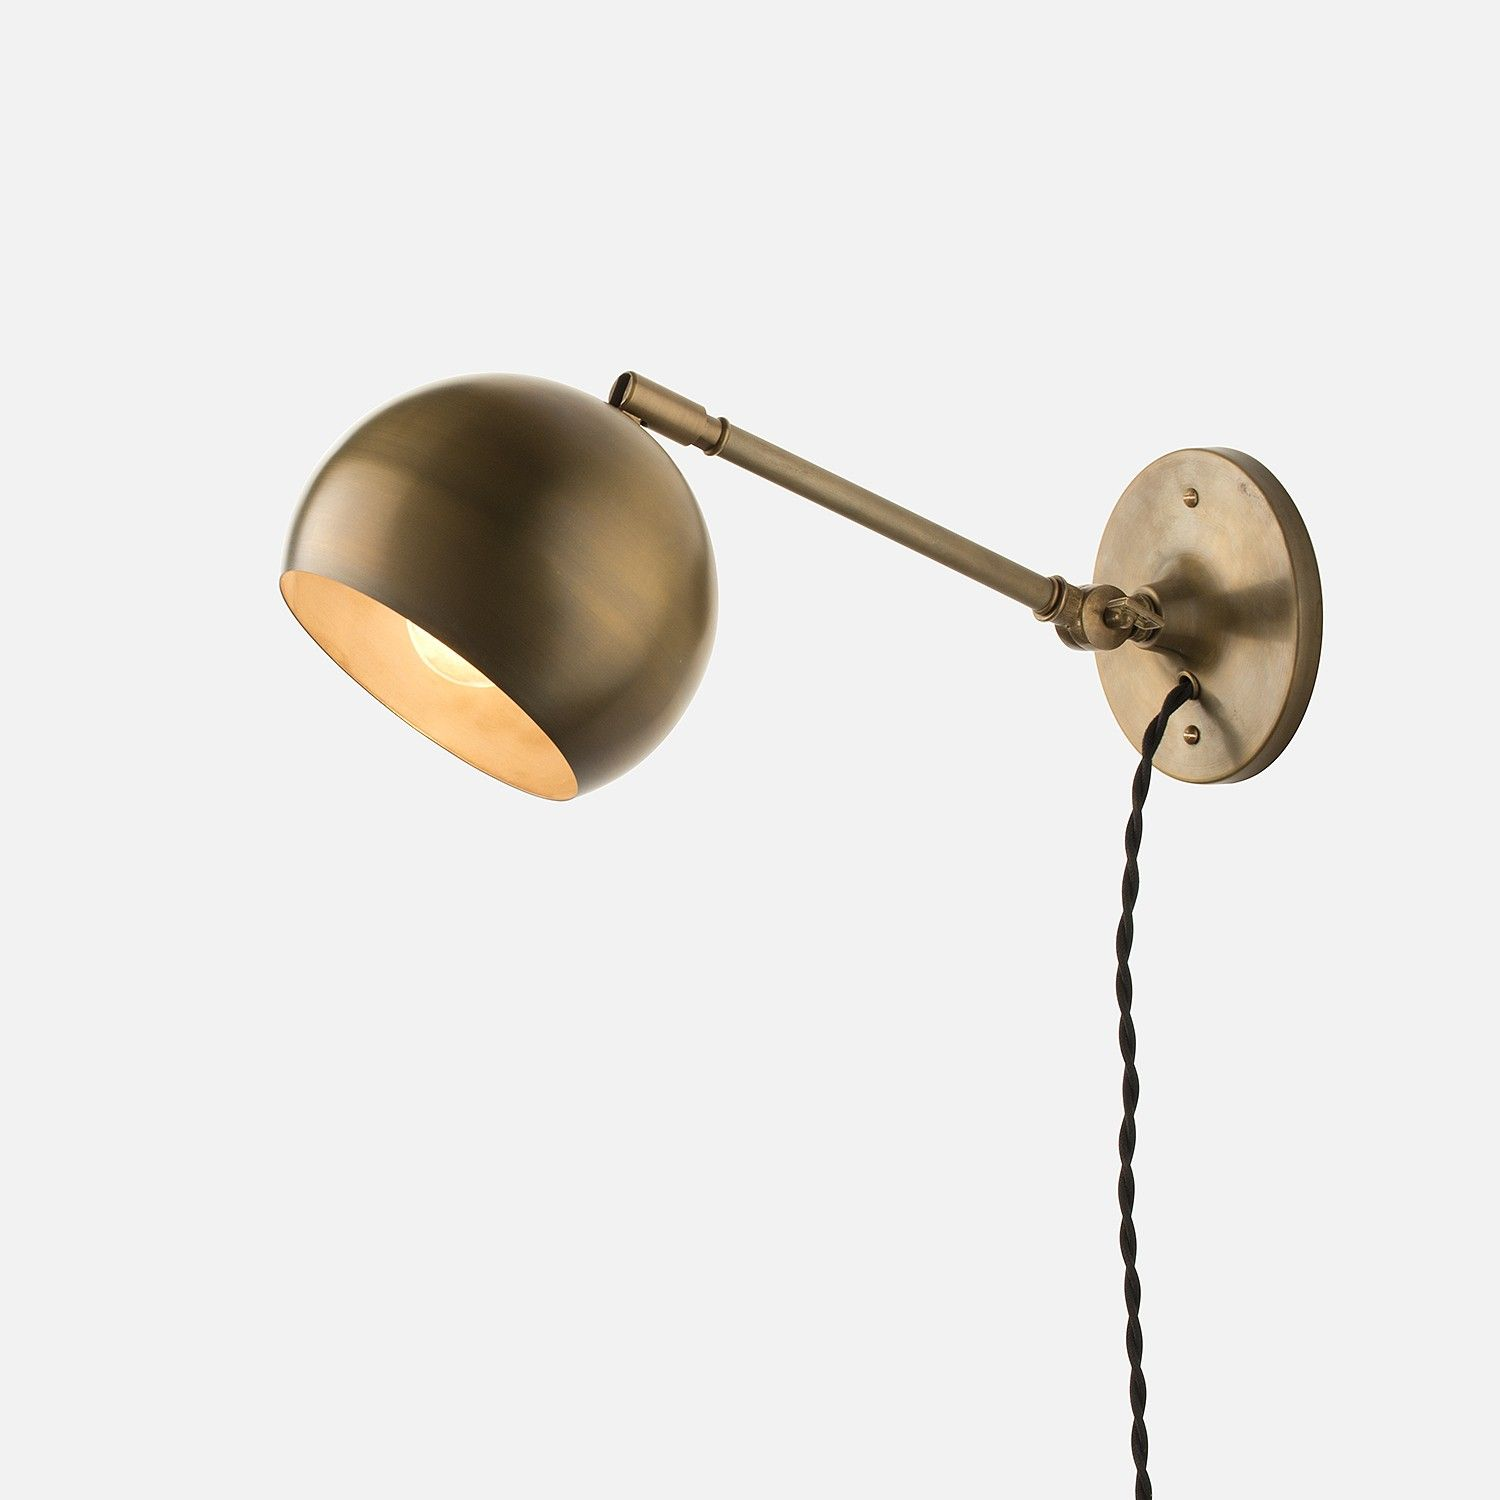 $183 Guest room sconces Schoolhouse Electric: Isaac Plug-In Sconce Brass -  Long Arm - Isaac Plug-In Sconce Brass - Long Arm Schoolhouse Electric, Wall